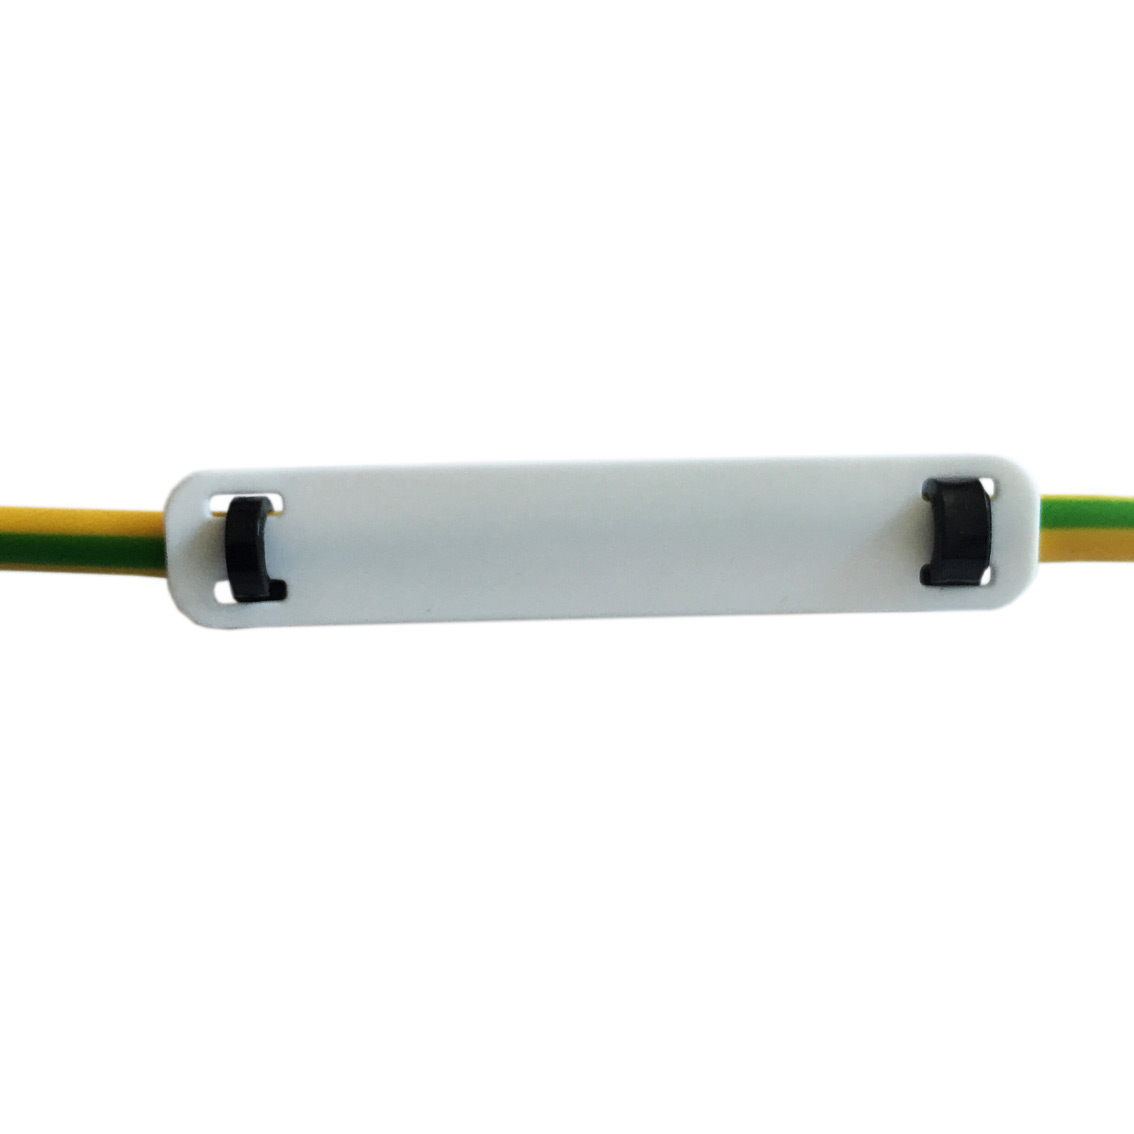 REPERE CABLE POLYAMIDE